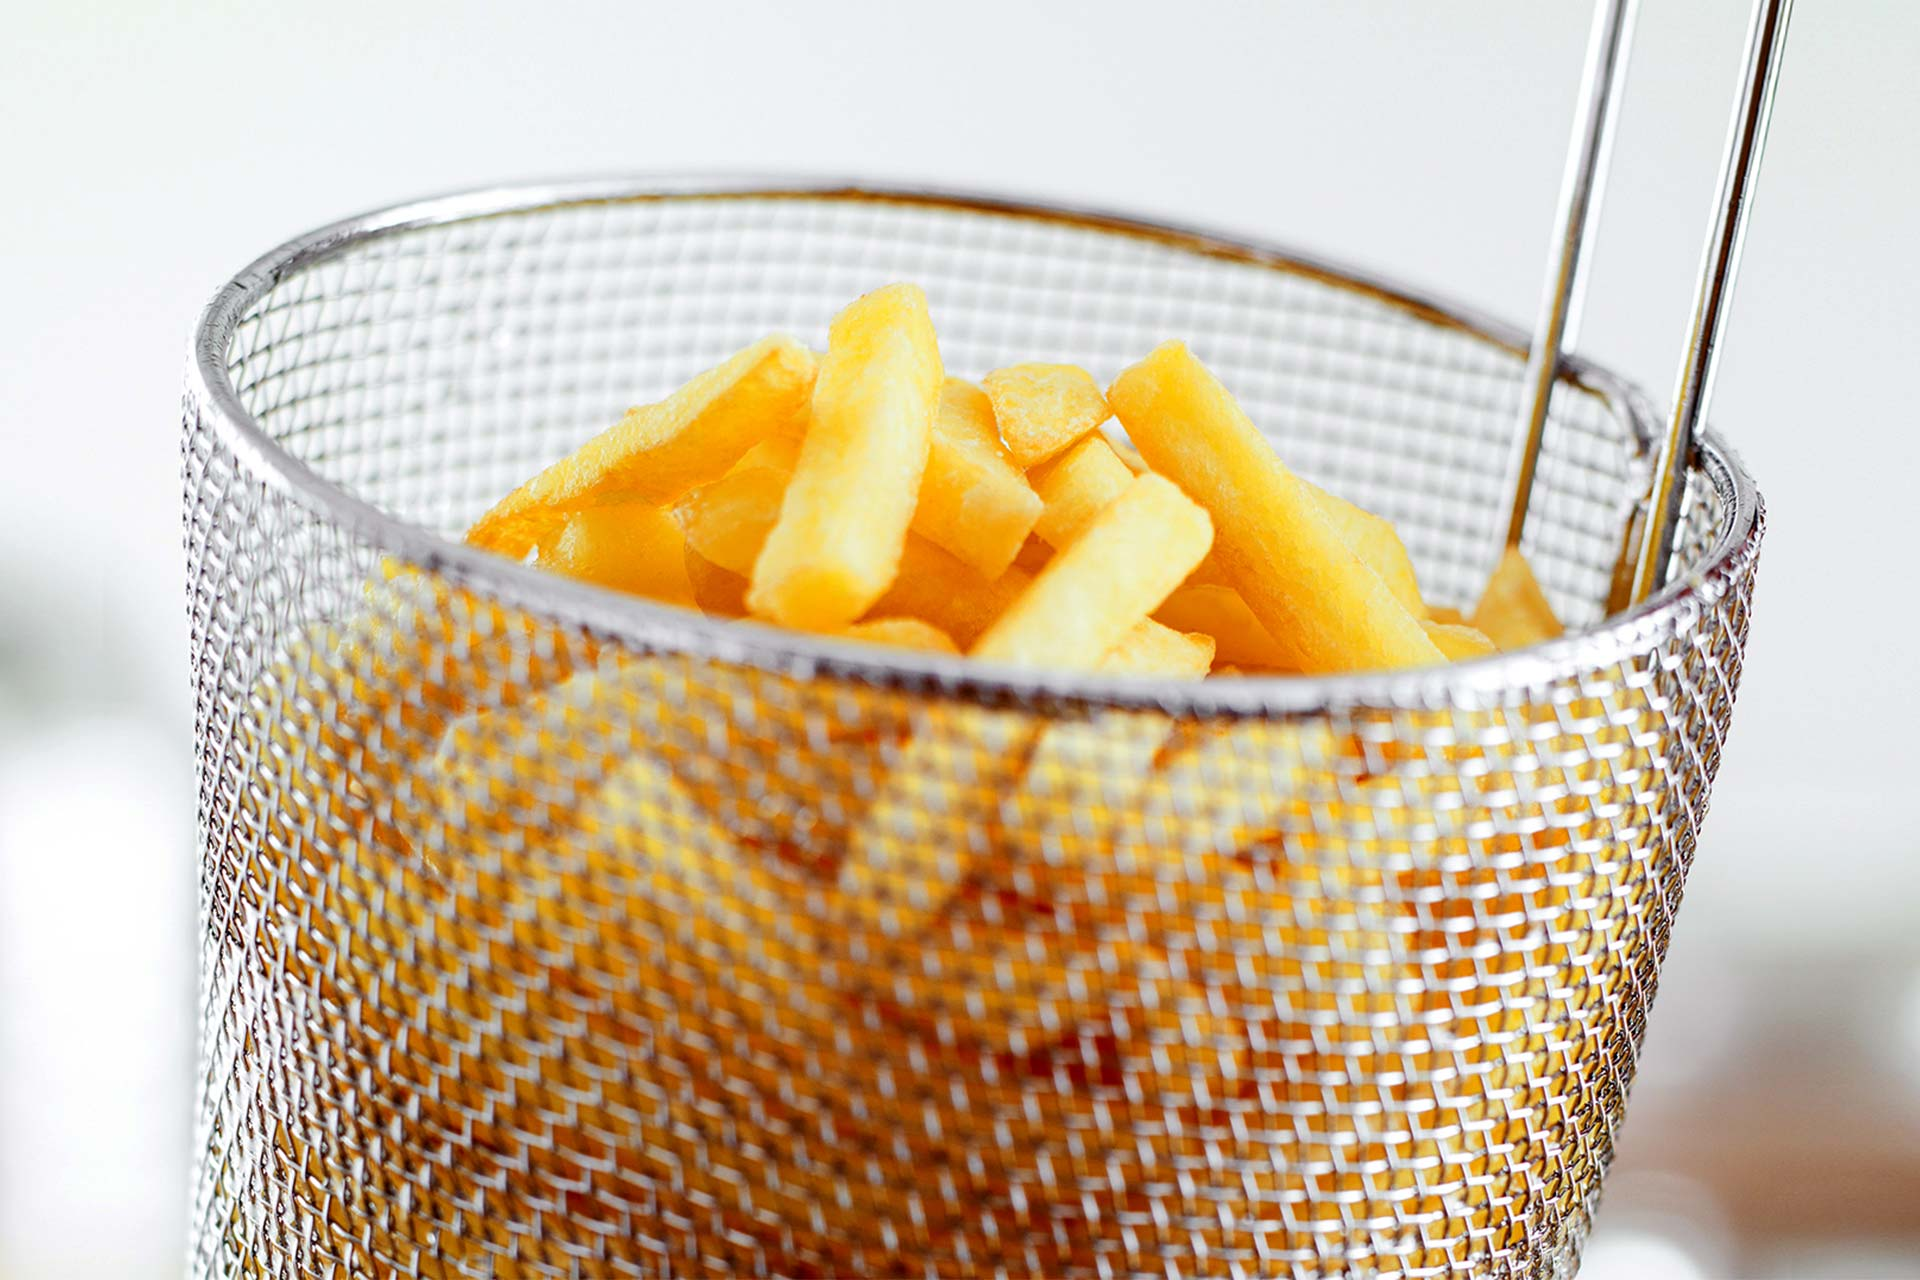 Fry french fries